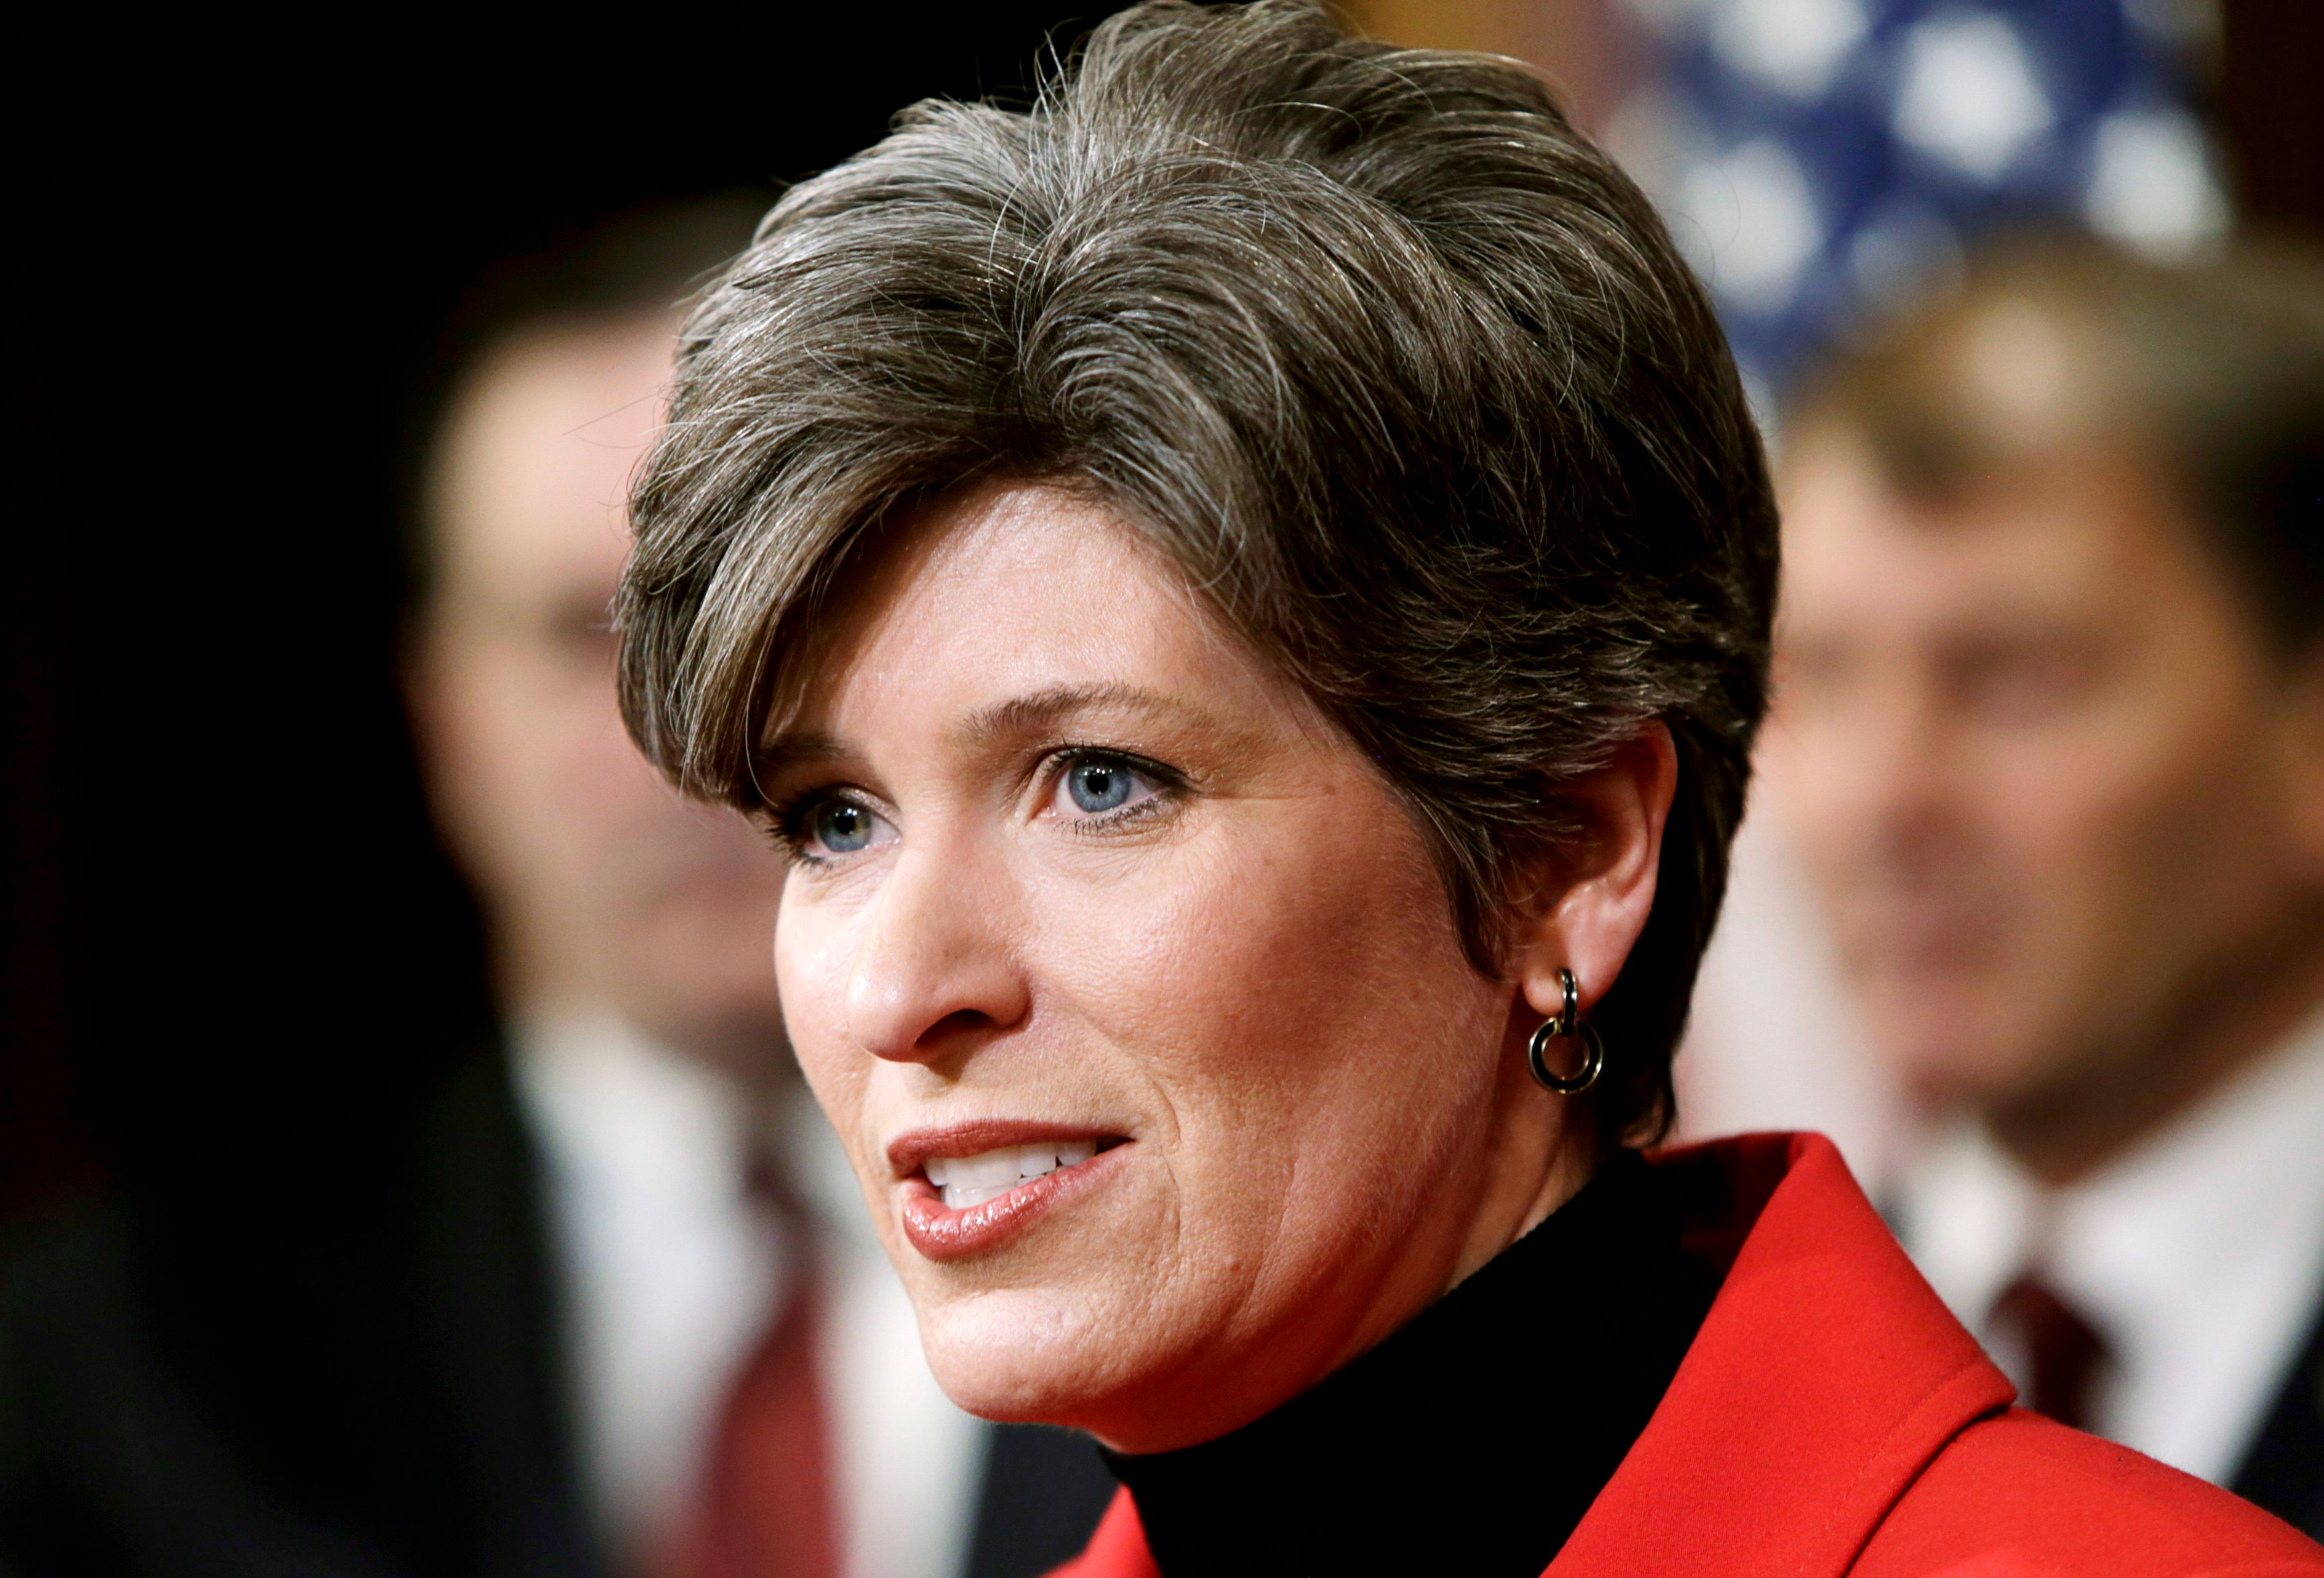 Senator Joni Ernst (R-IA) delivers remarks at a bi-partisan news conference to discuss arming Ukrainians with lethal weapons to fight separatists in east Ukraine, on Capitol Hill in Washington February 5, 2015.      REUTERS/Gary Cameron   (UNITED STATES - Tags: POLITICS CIVIL UNREST)